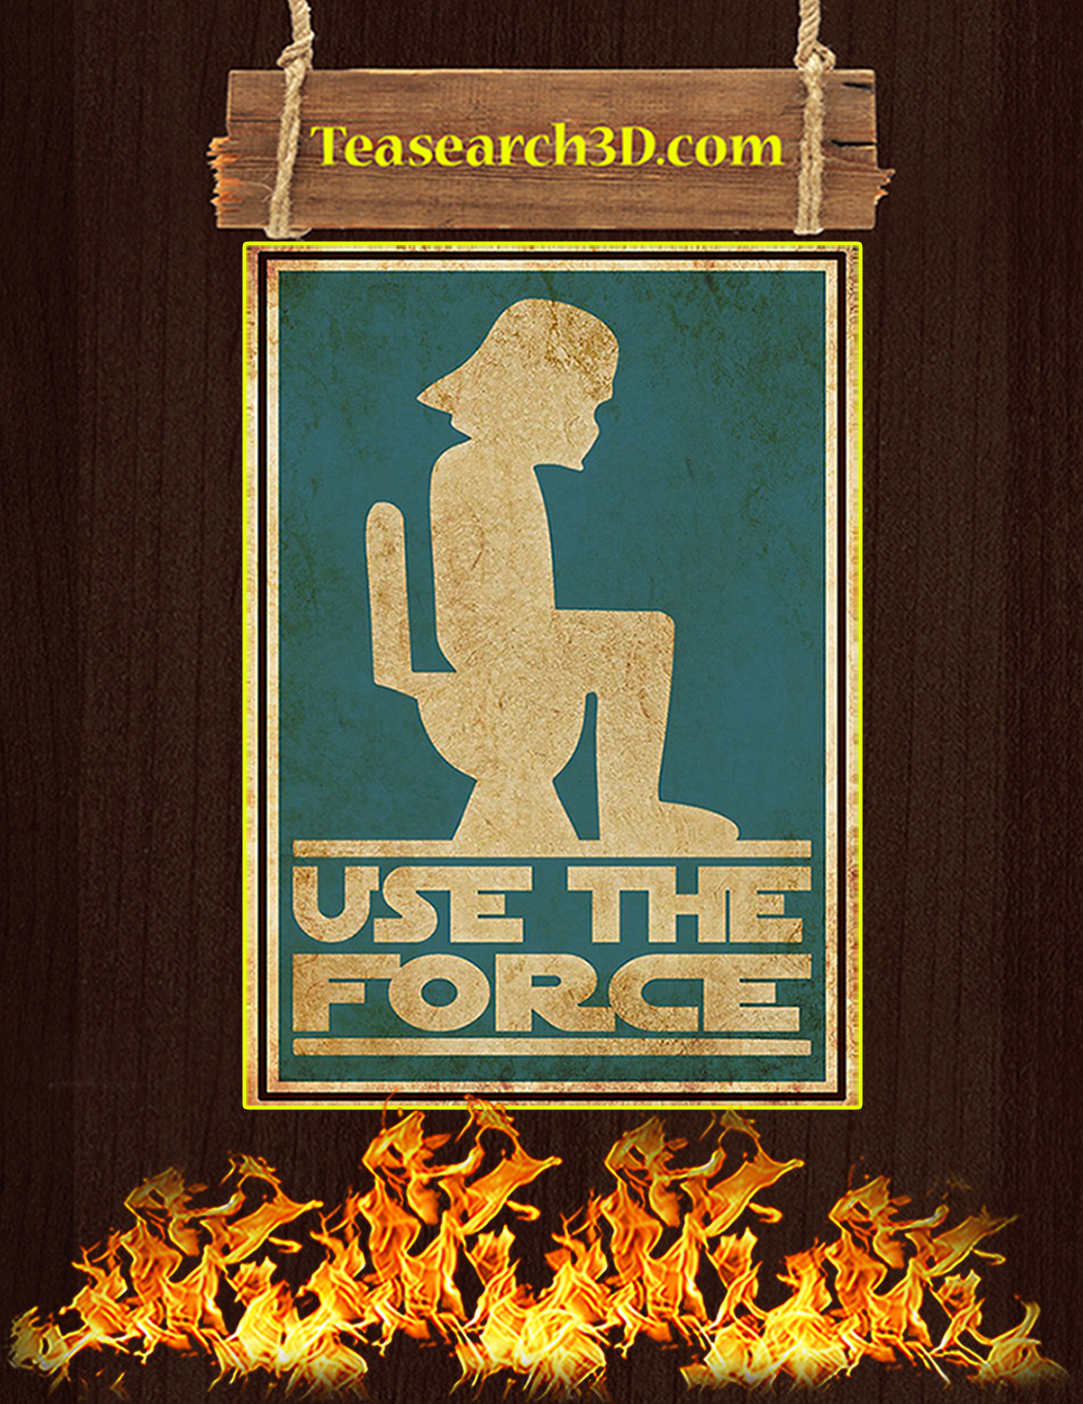 Star wars Use the force bathroom sign poster A2